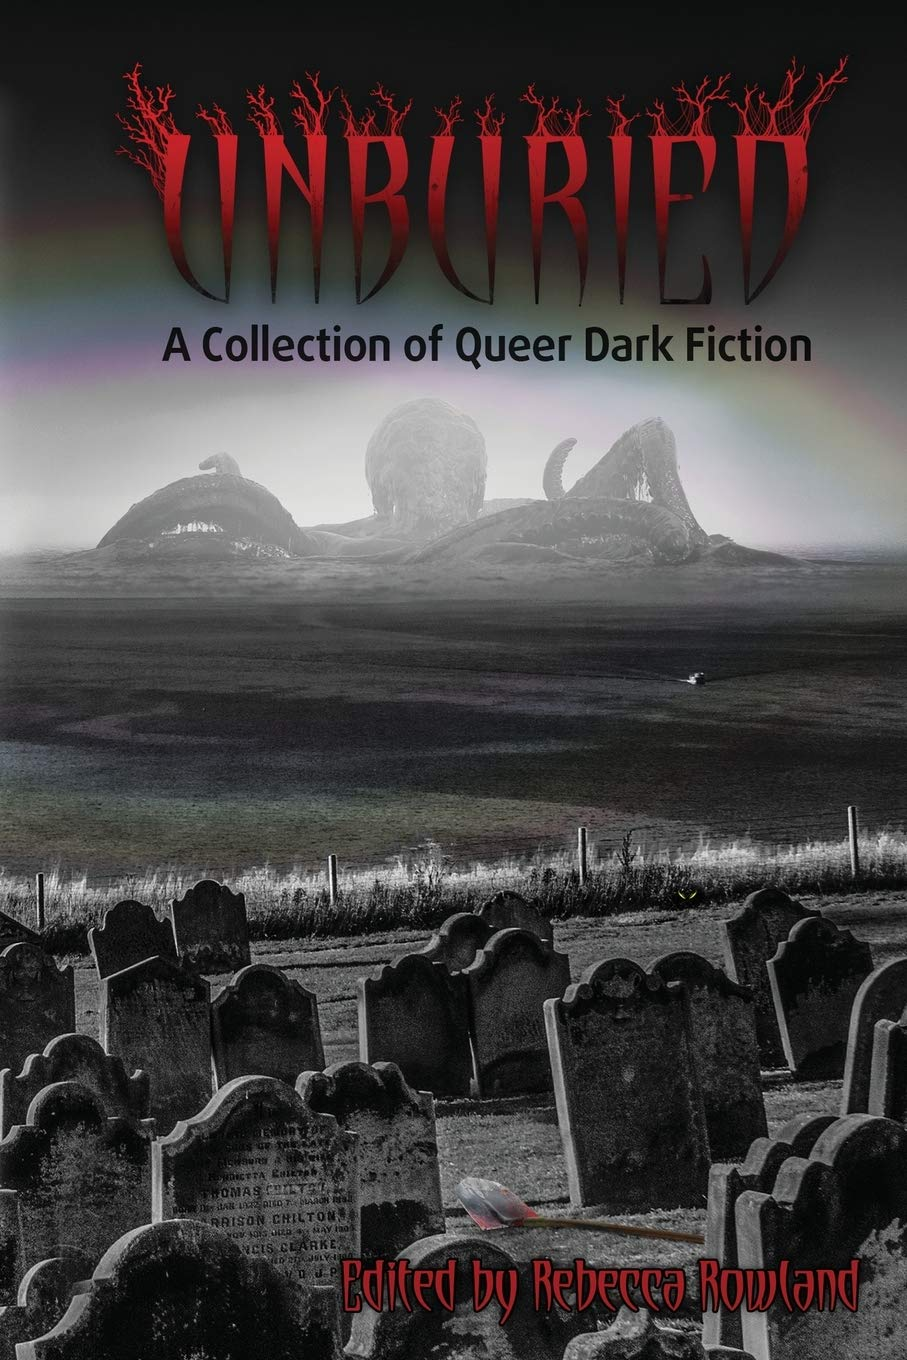 Unburied: A Collection of Queer Dark Fiction by Rebecca Rowland